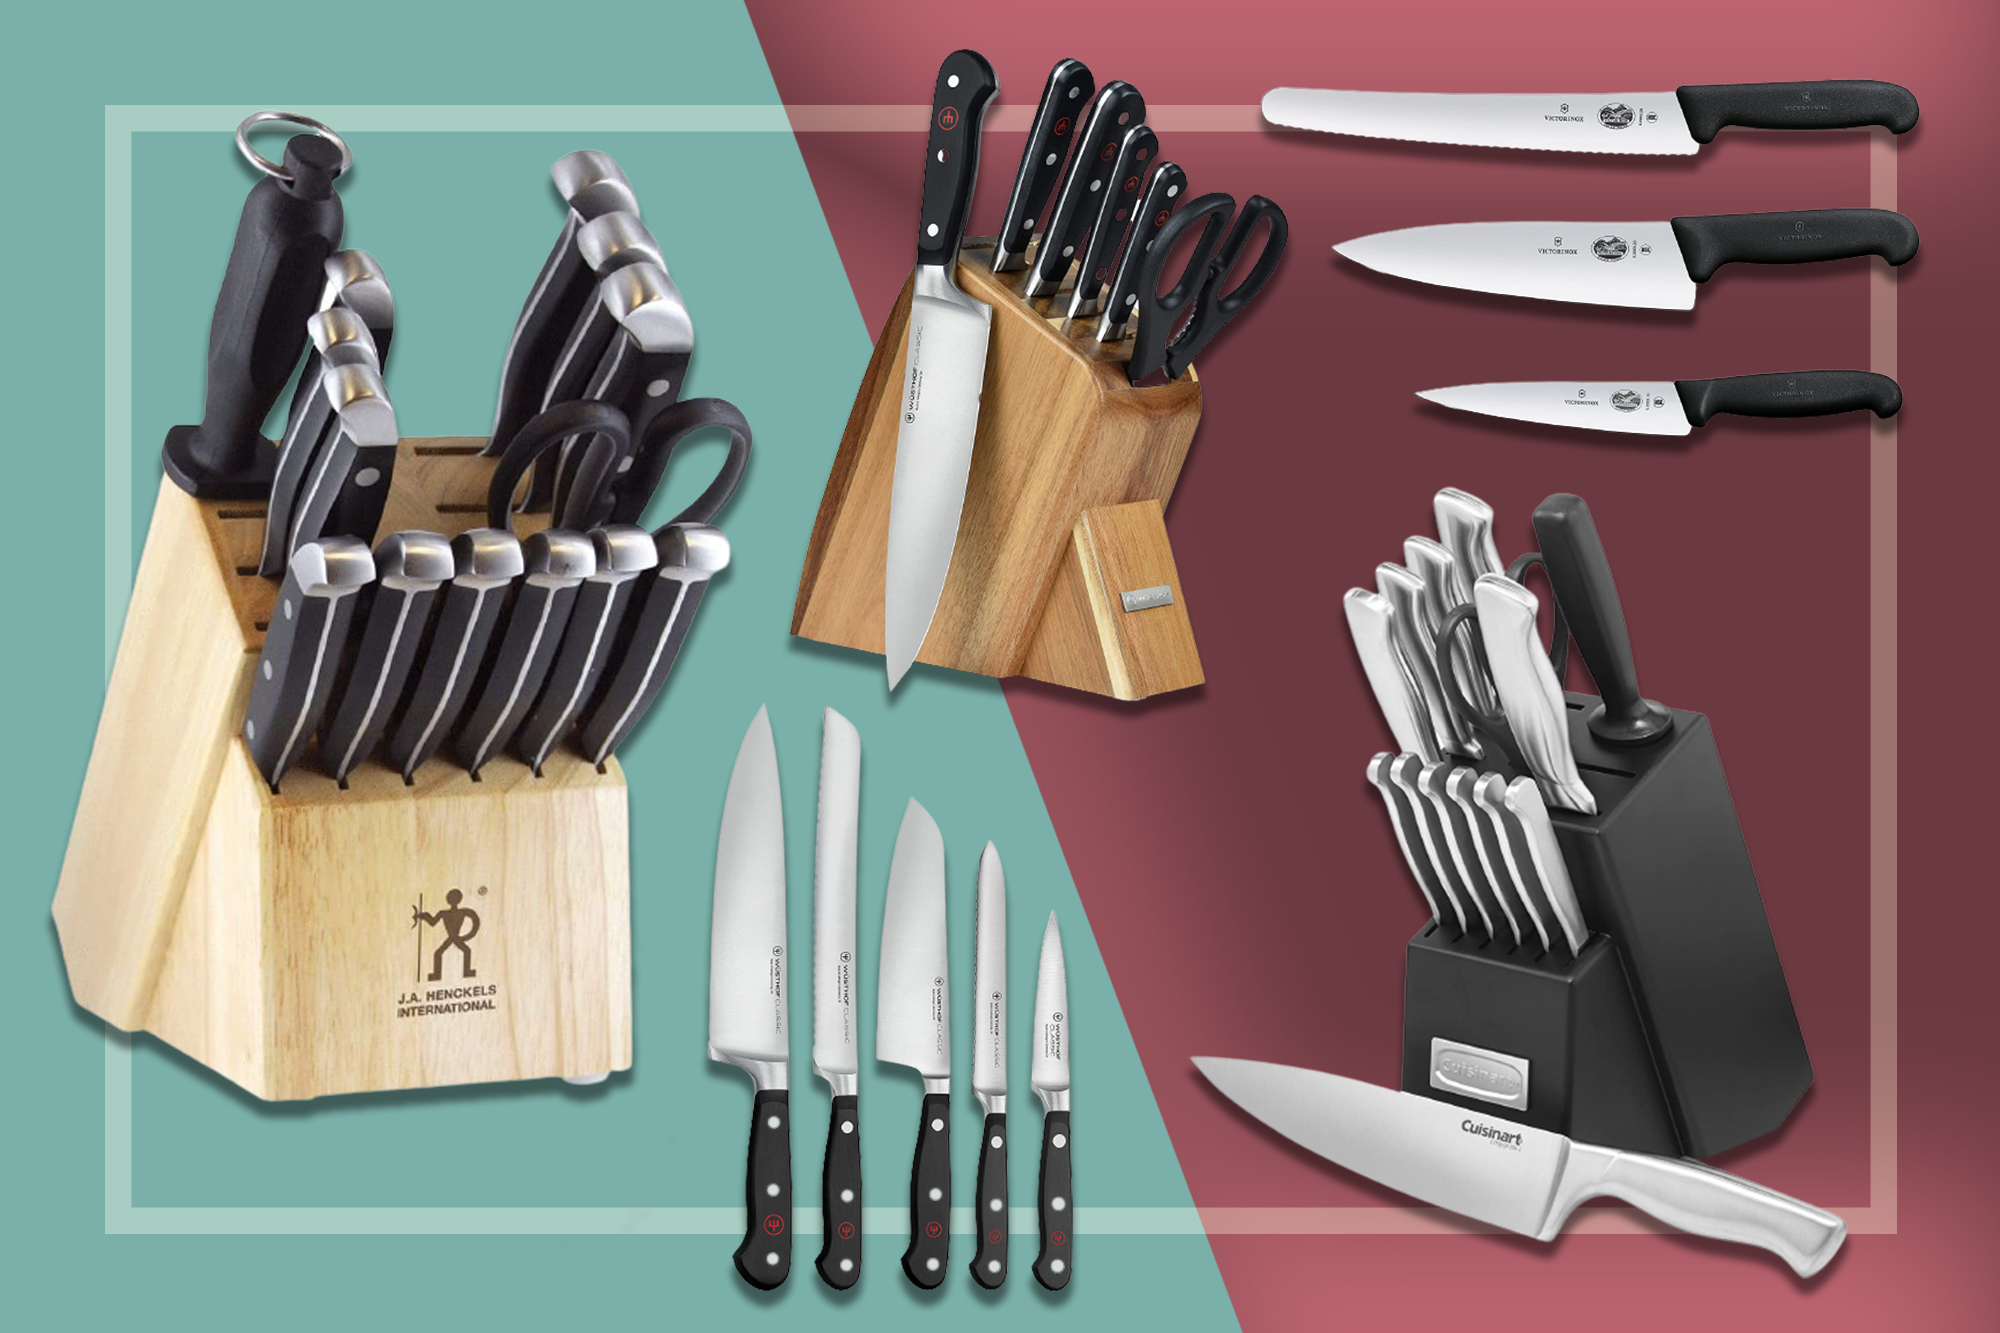 11 Best Knife Sets On Amazon According To Customer Reviews Food Wine